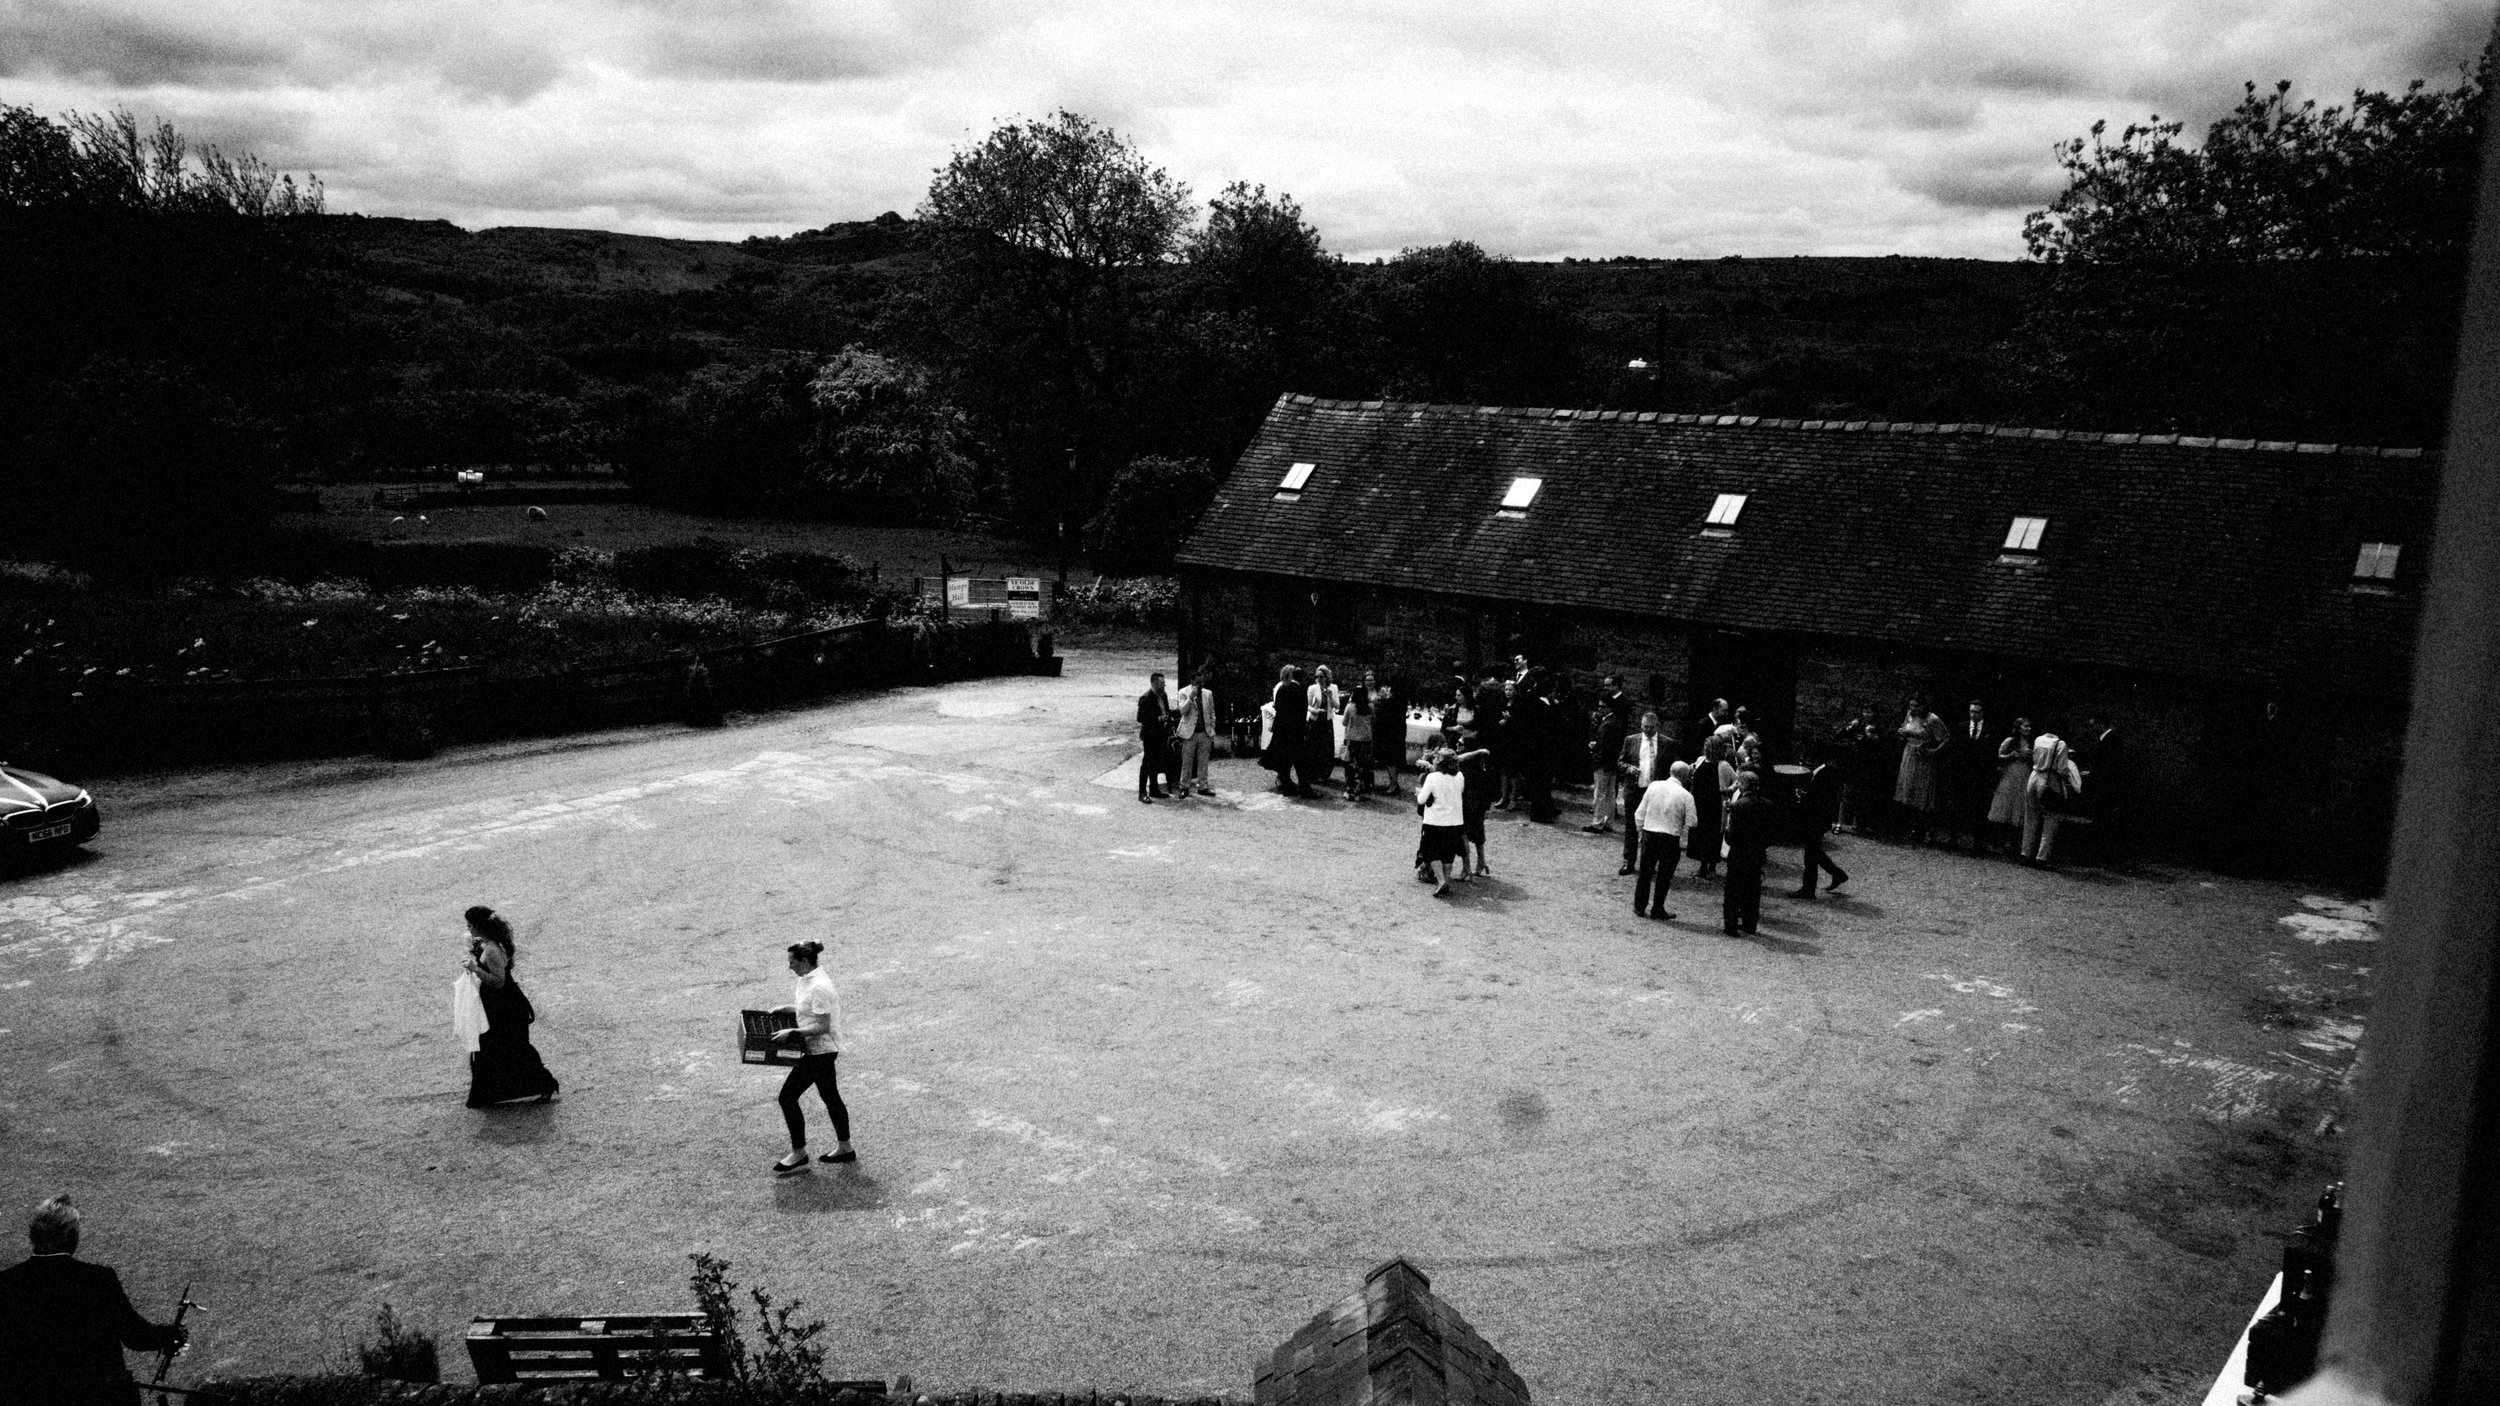 hamps-hall-and-barn-peak-district-documentary-0042wedding-photographer-.JPG